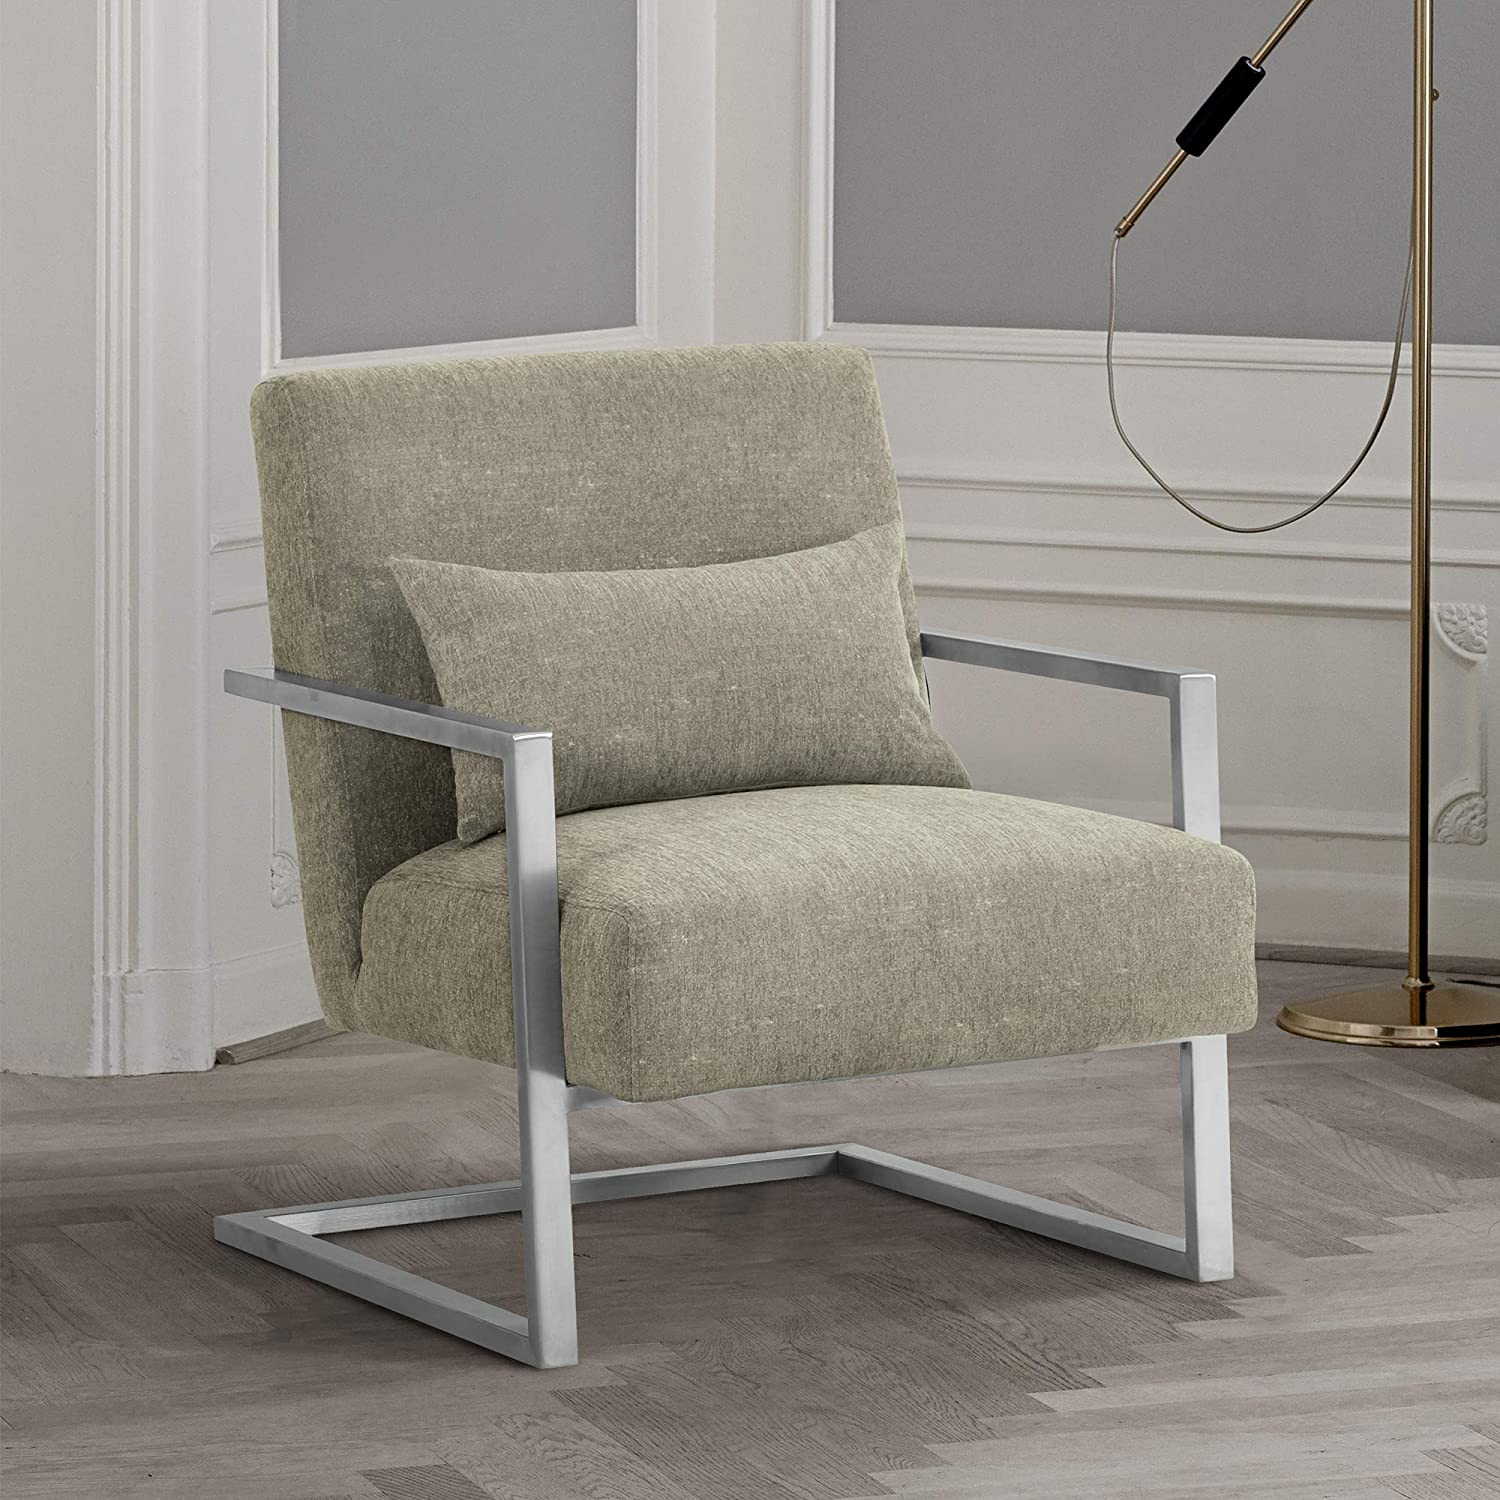 Armen Living Skyline Club Chair in Grey Linen and Brushed Stainless Steel Finish